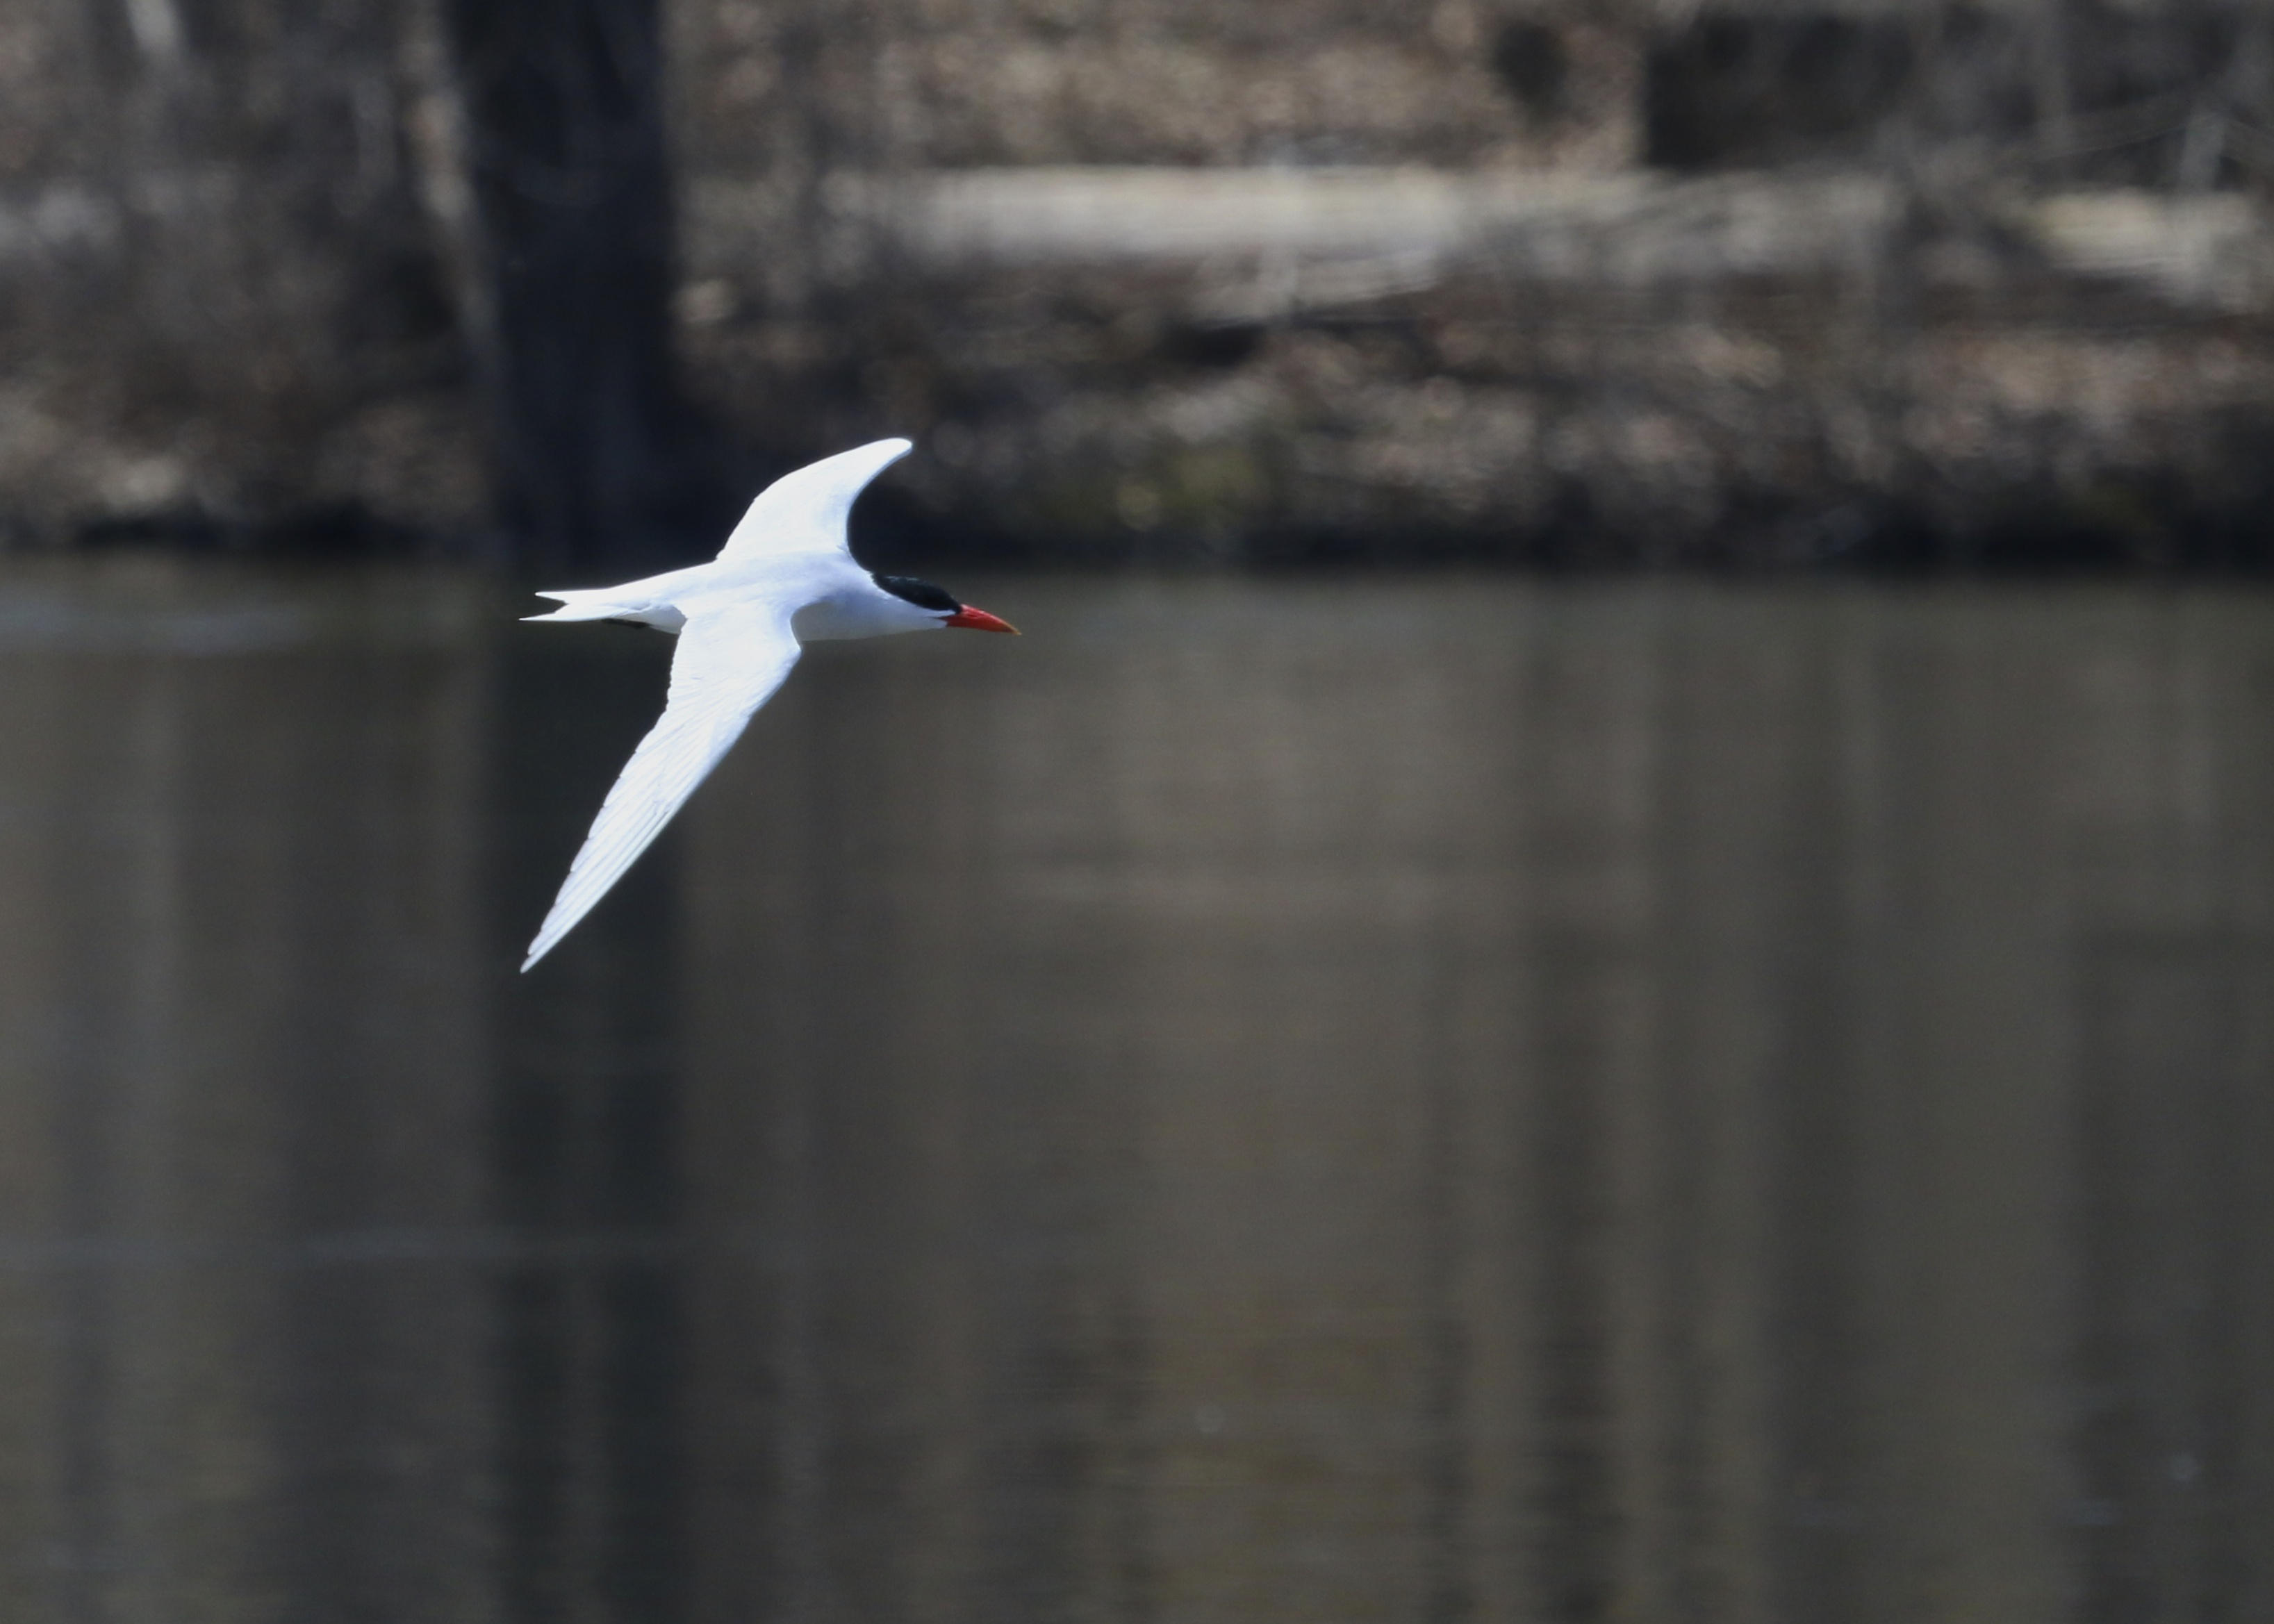 A Caspian Tern (with blown highlights) in flight. Baldwinsville, NY  4/20/14.